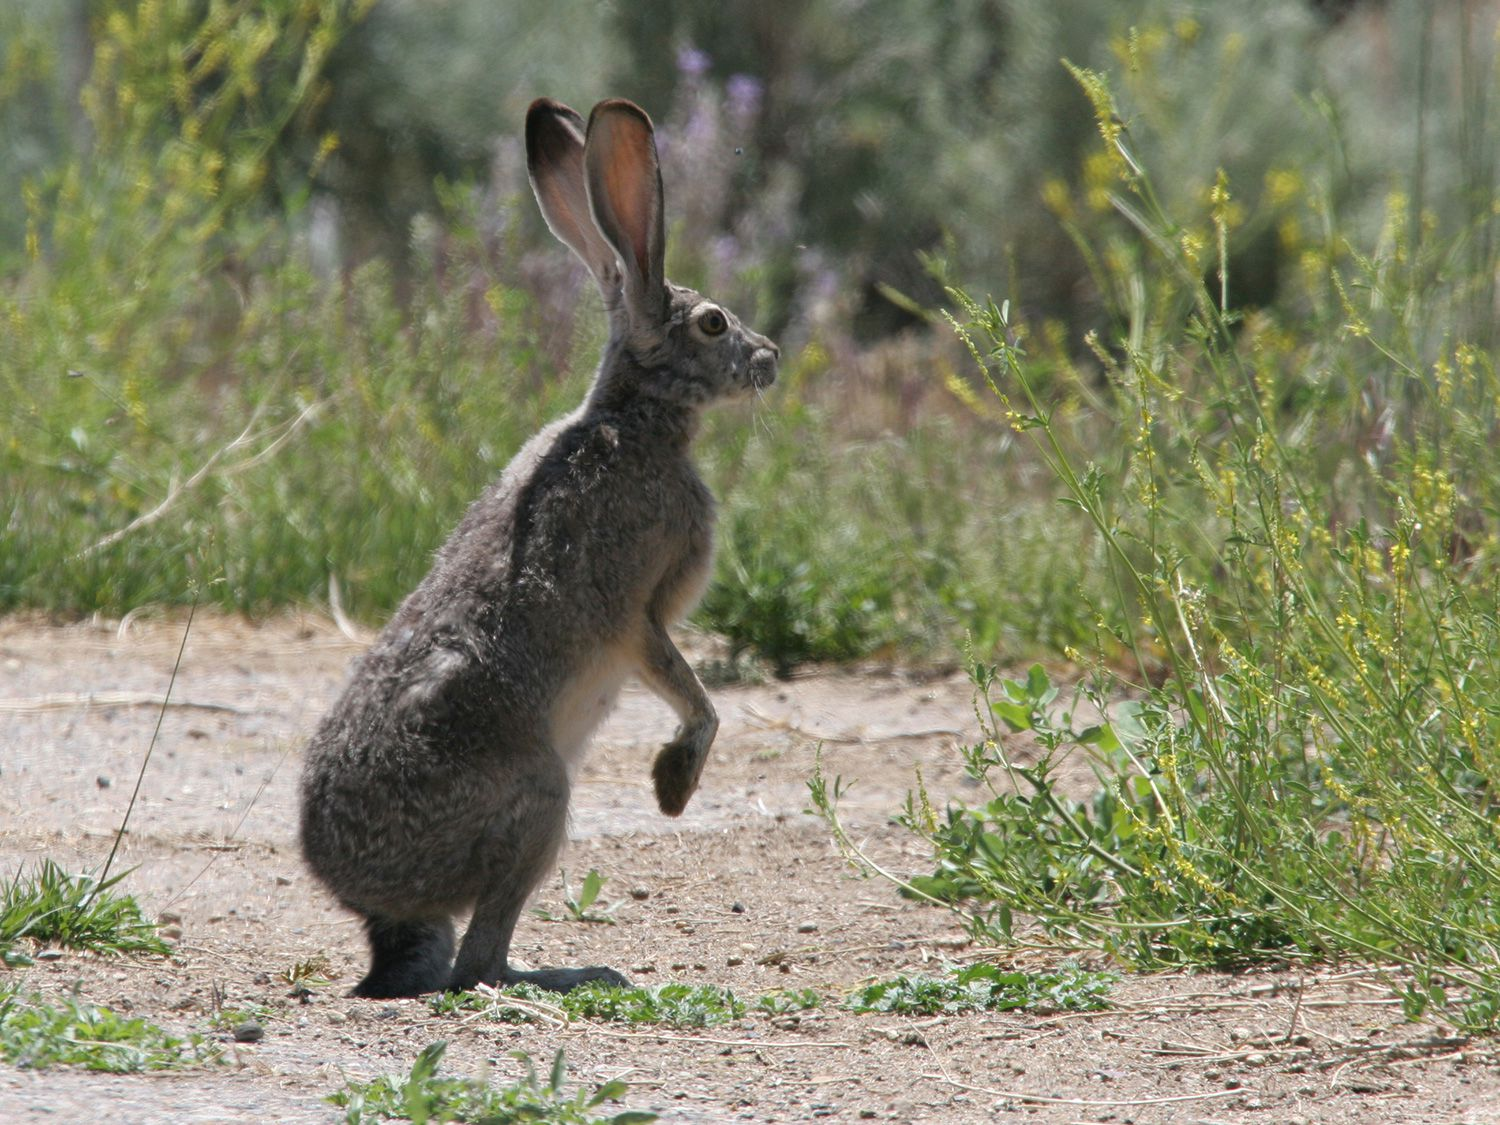 North American Rabbits Face a Deadly Virus